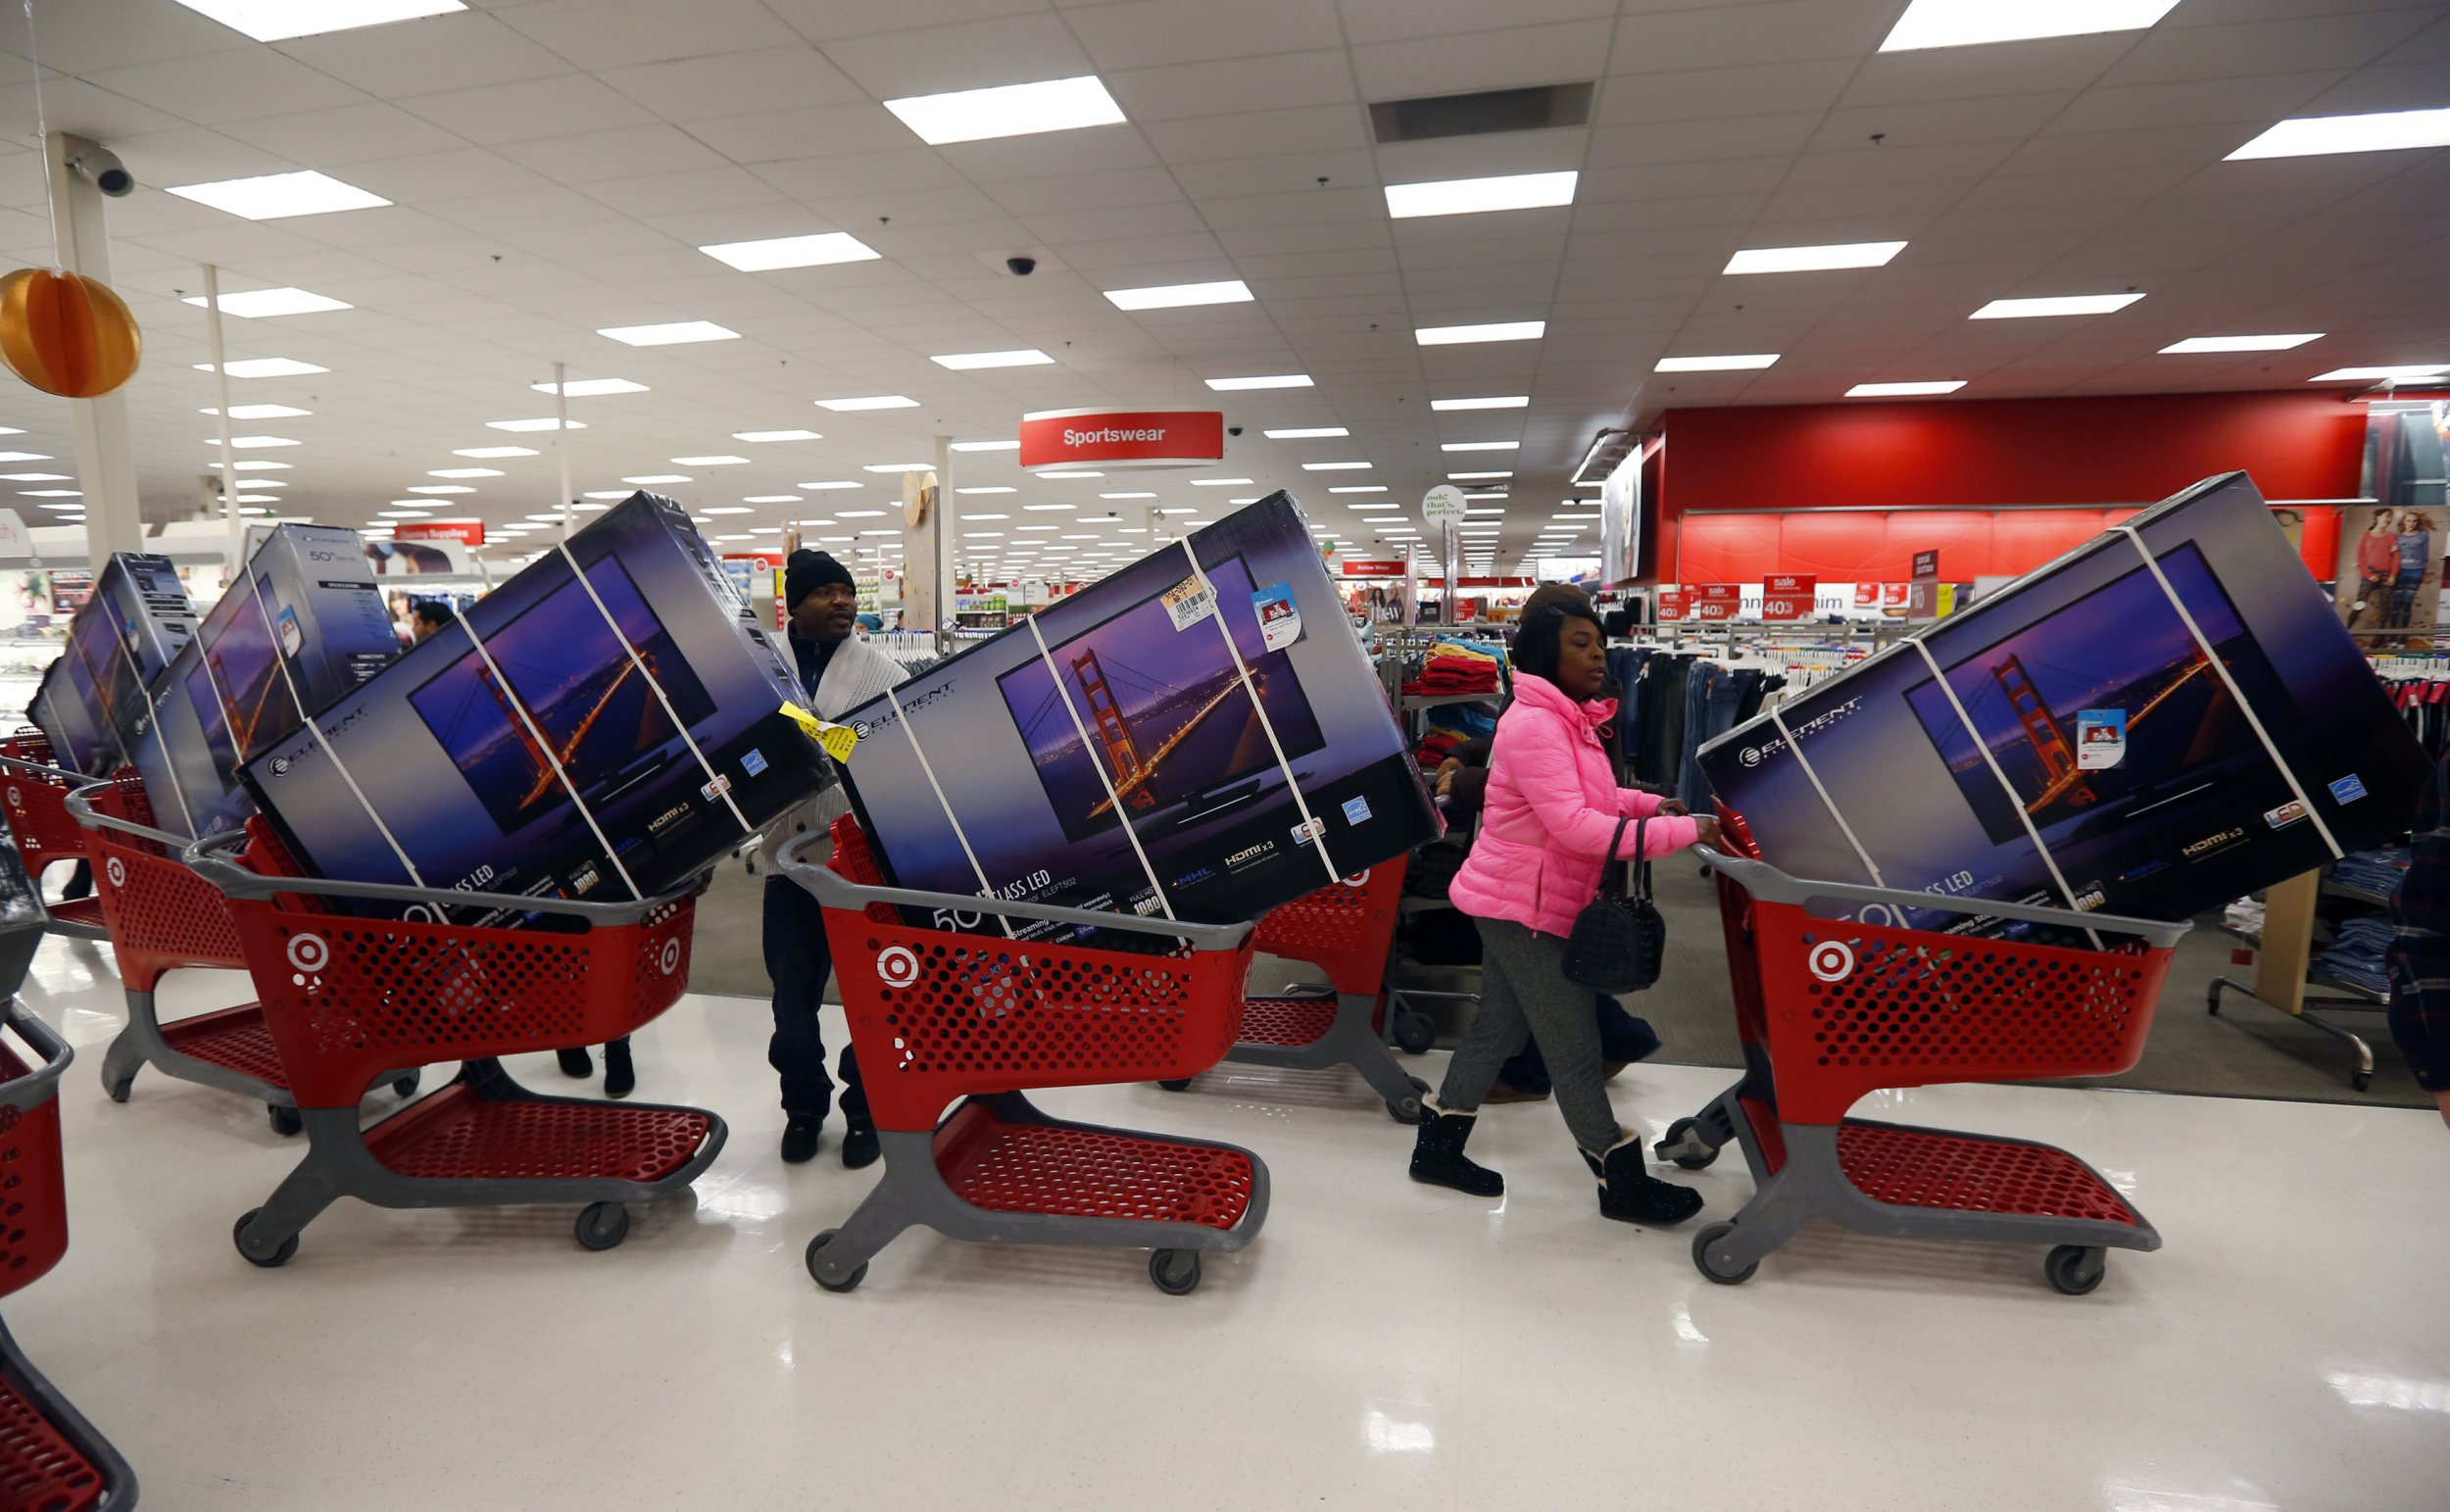 Thanksgiving Day holiday shoppers line up with television sets on discount at the Target retail store in Chicago, Illinois, November 28, 2013. About 140 million people are expected to shop over the four-day weekend, according to the National Retail Federation. REUTERS/Jeff Haynes (UNITED STATES - Tags: BUSINESS TPX IMAGES OF THE DAY) - GM1E9BT0TMK01